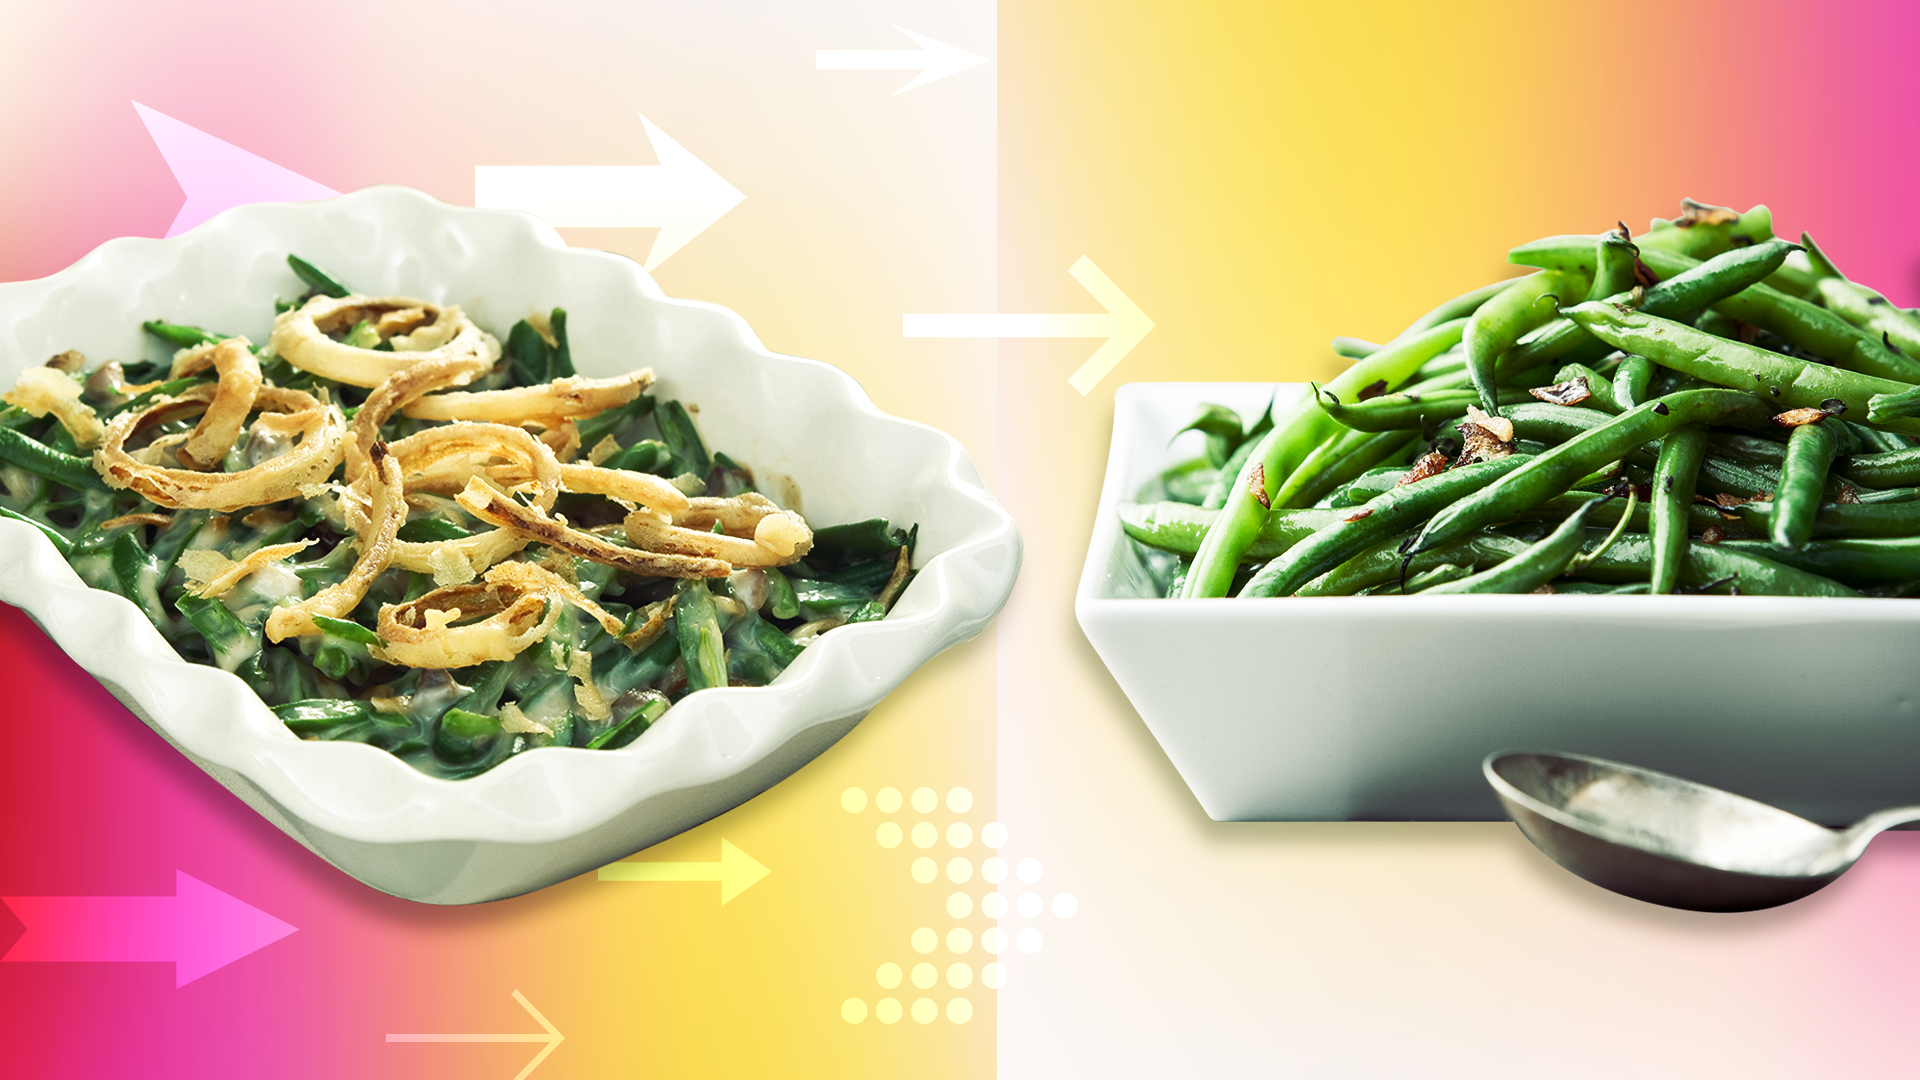 23 Healthy Holiday Food Swaps That Can Make a Huge Difference